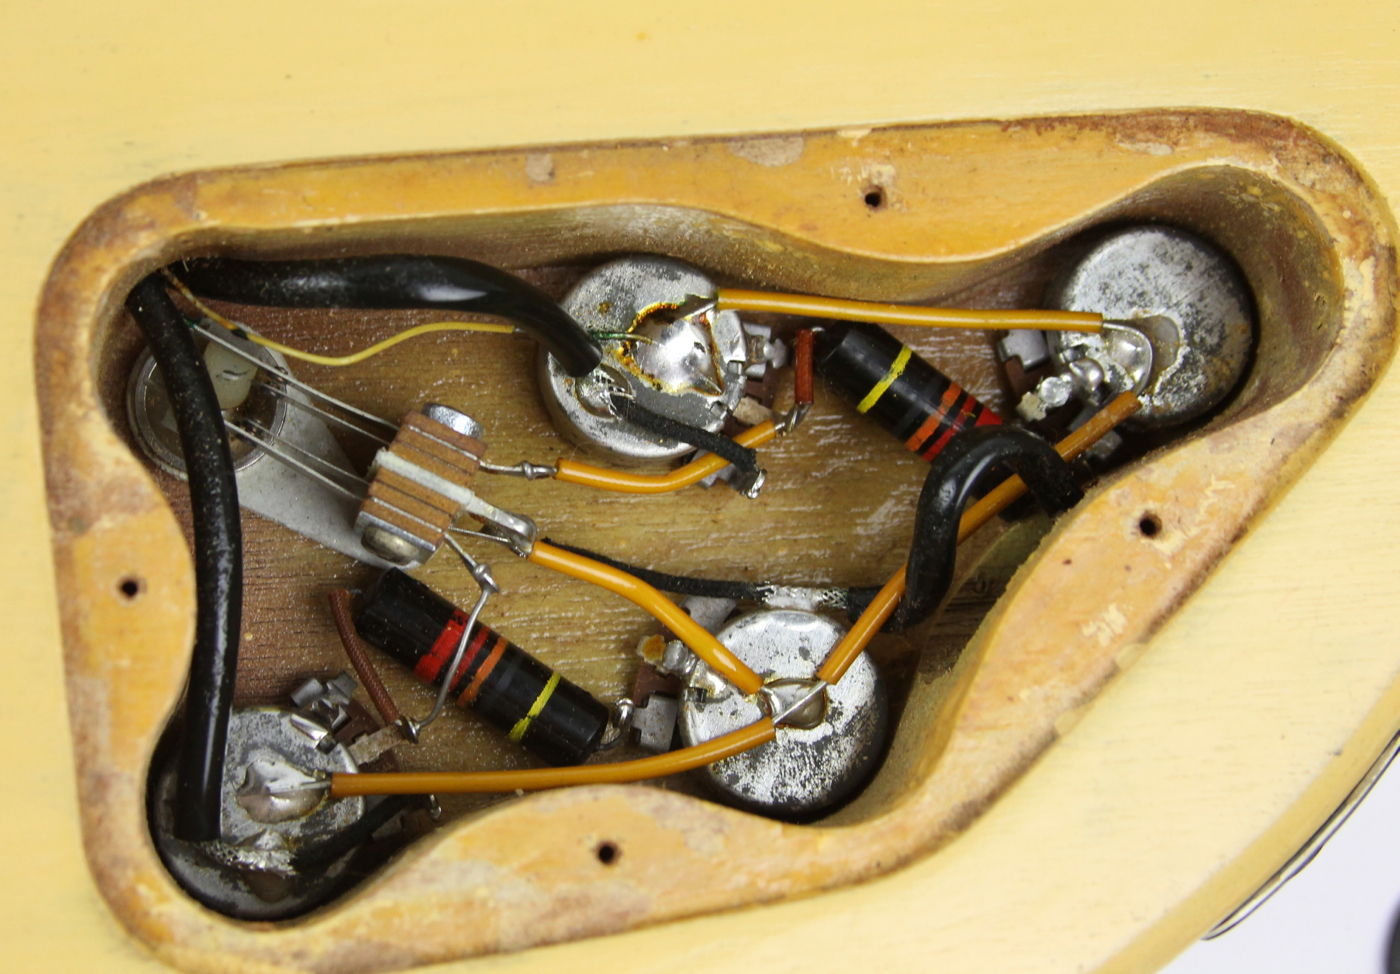 gibson les paul special wiring diagram lg microwave oven circuit 1960 tv yellow guitar for sale